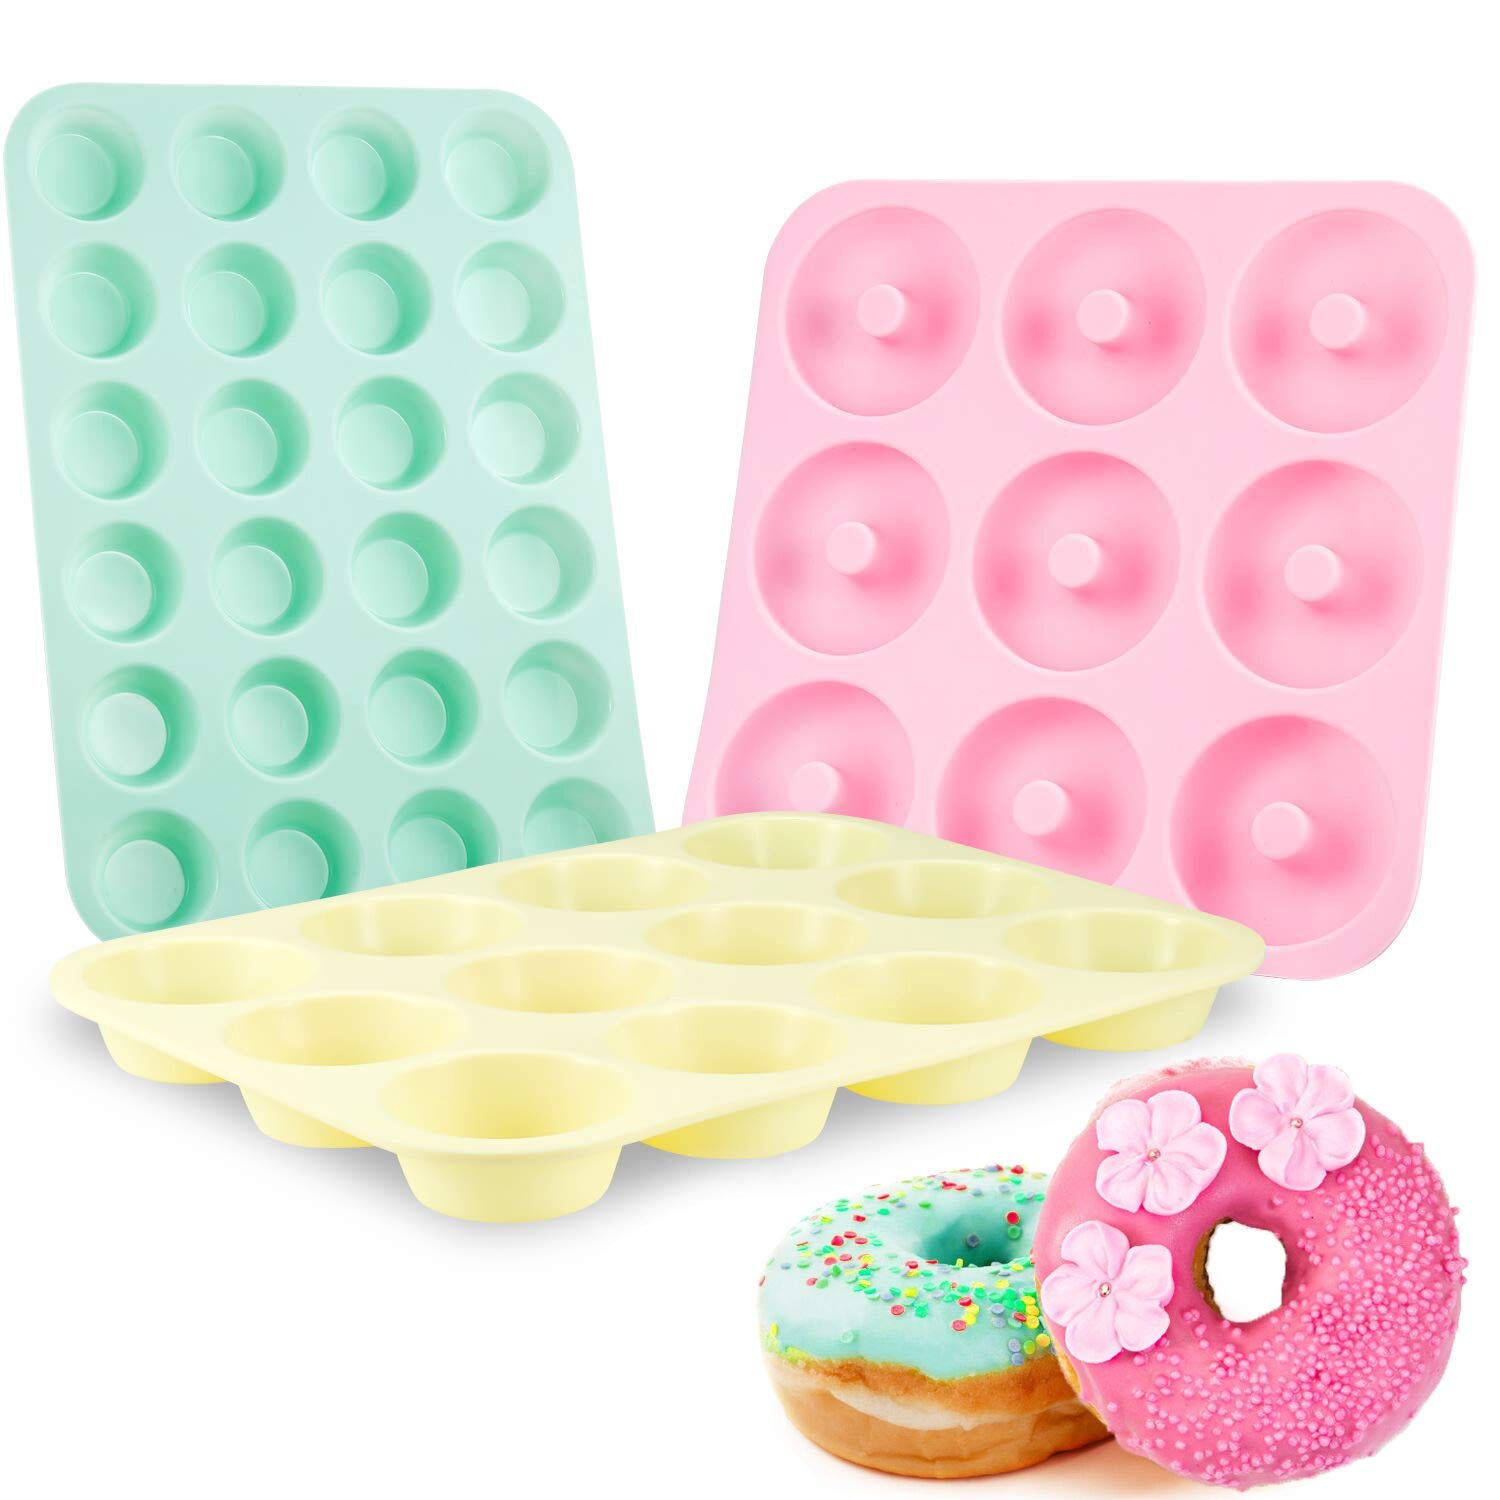 Senbowe Silicone Muffin and Cupcake Pans - Set of 3 | Silicone Cake Baking Molds | Large (12) and Mini (24) |Medium Doughnut (9) | Easy to Clean Non Stick Bakeware | BPA Free and Dishwasher Safe